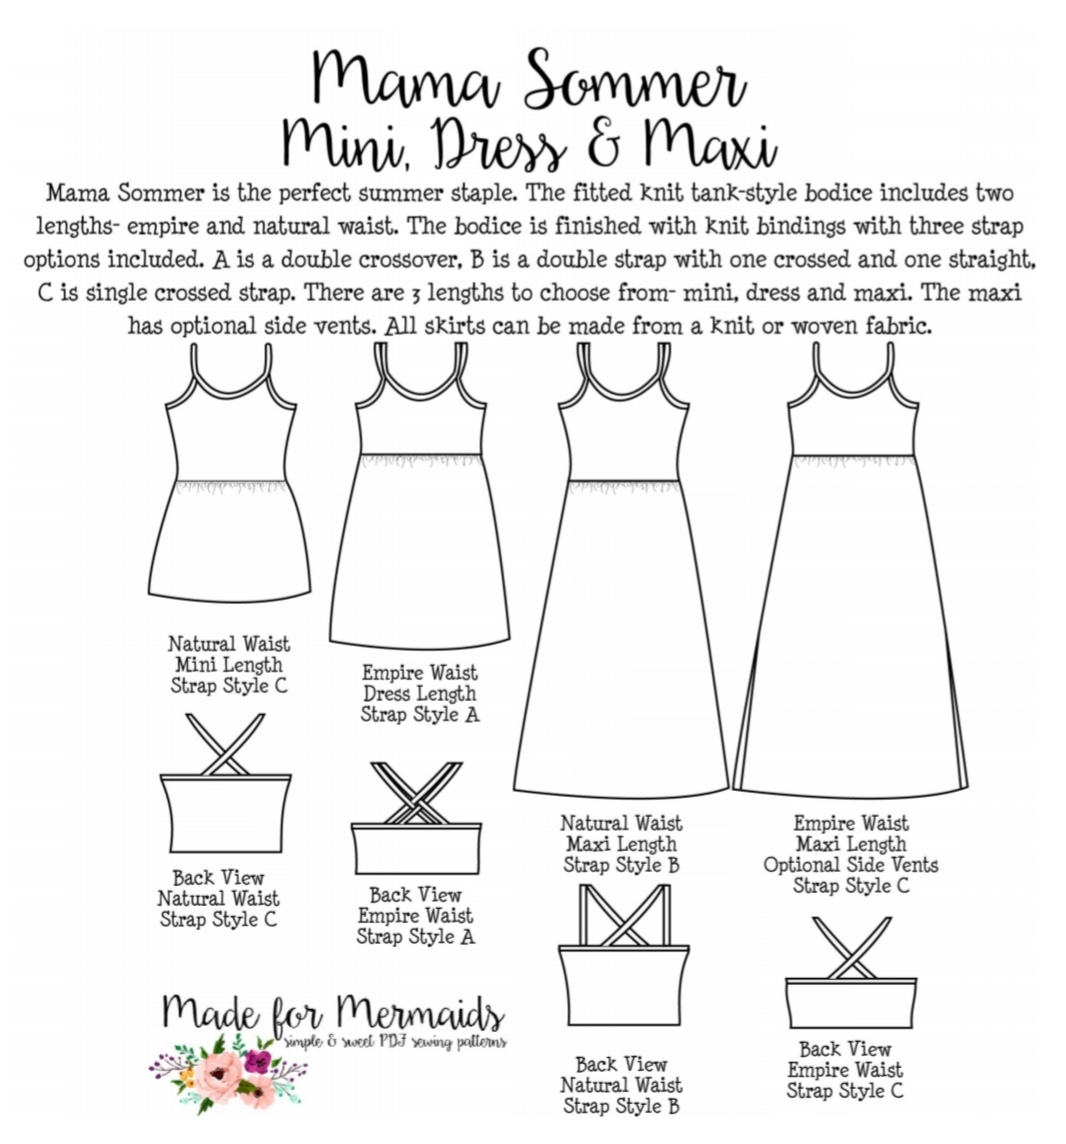 the line drawings of the mama sommer mini, dress, and maxi from made for mermaids. The garment is a fitted knit tank-style bodice with empire or natural waist, three strap options, and multiple lengths.